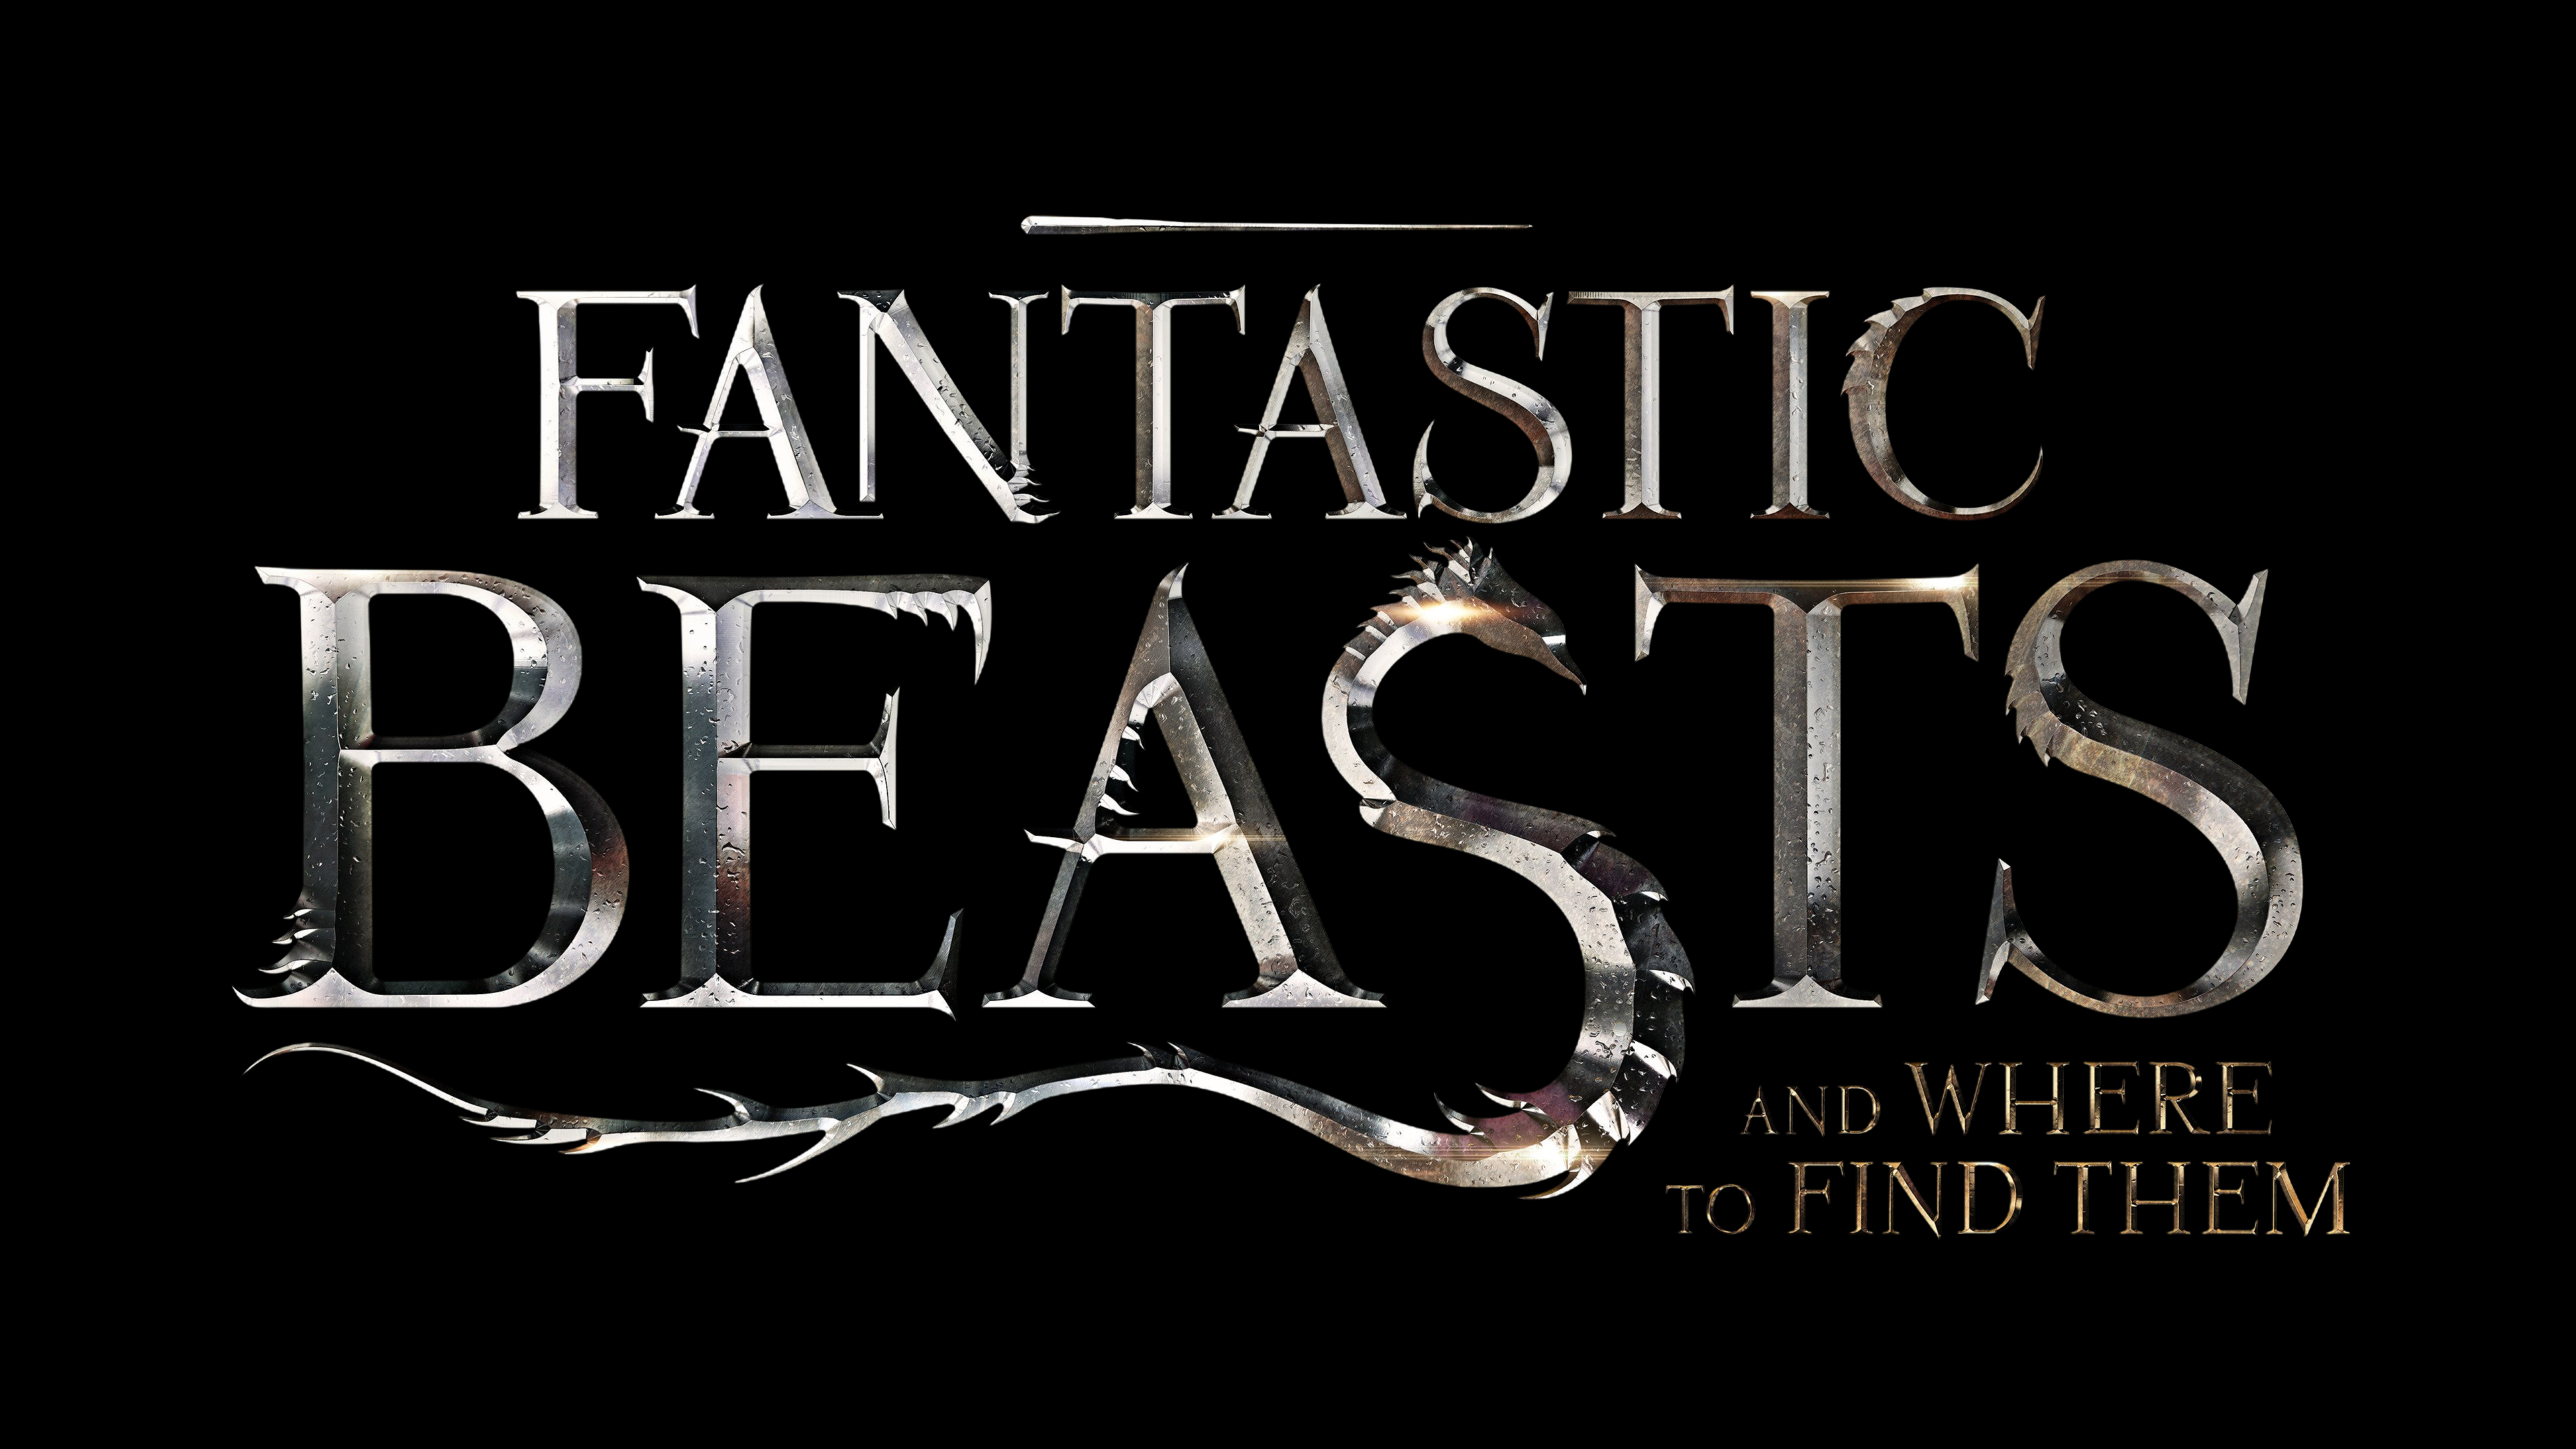 18 Fantastic Beasts And Where To Find Them HD Wallpapers